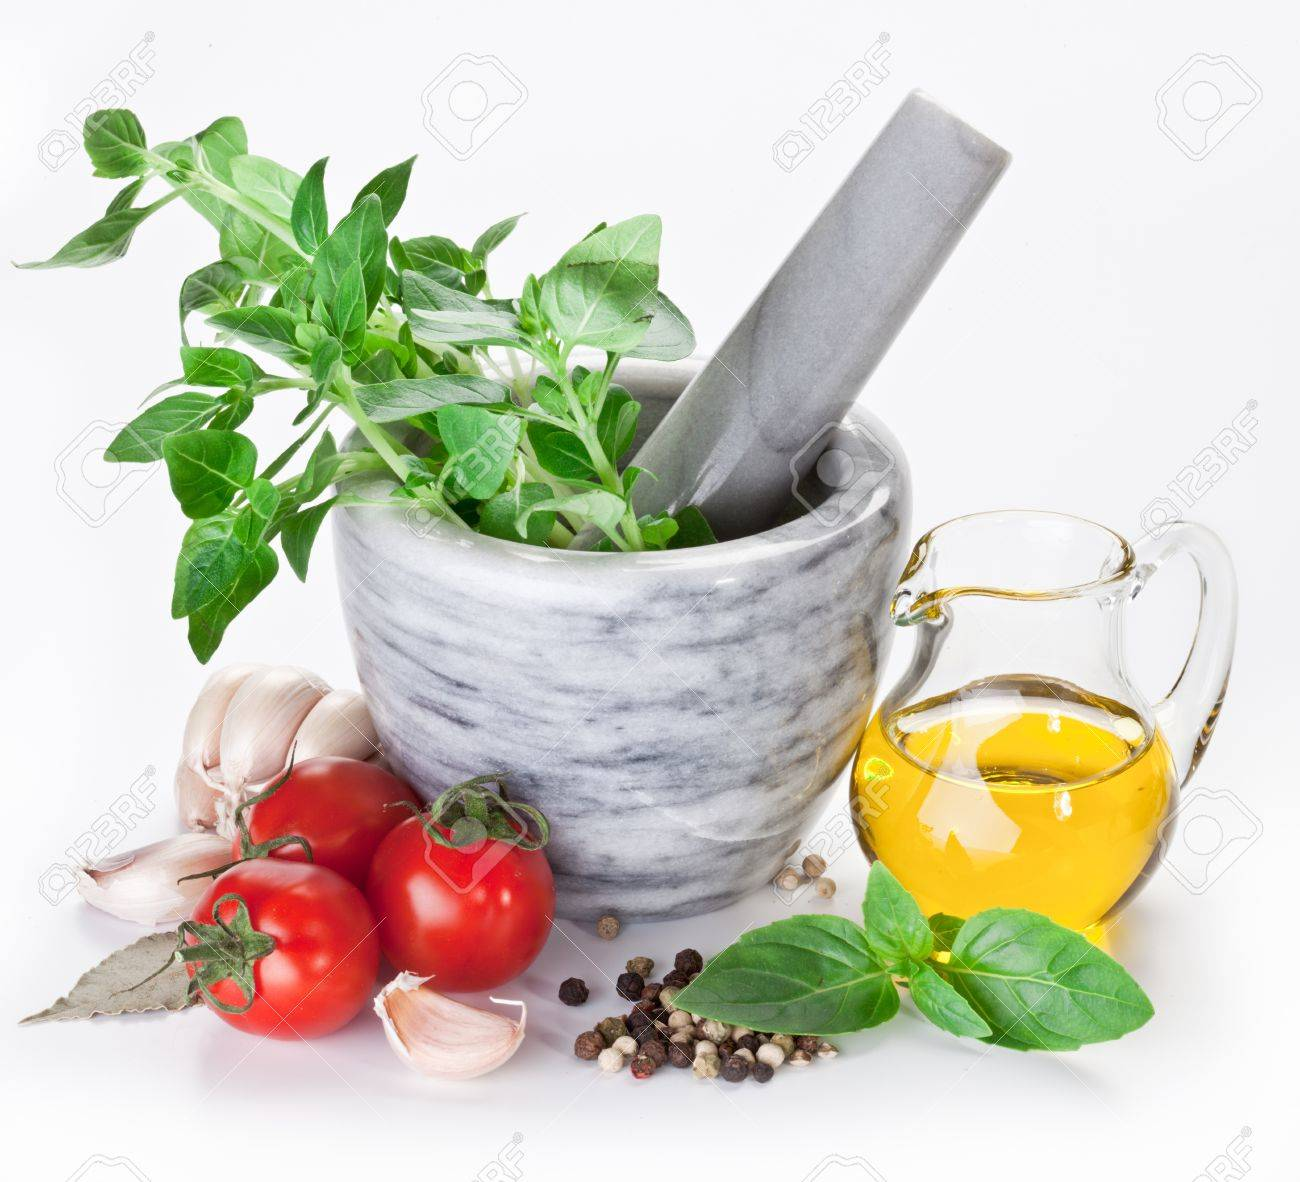 Mortar with pestle and basil herbs and olive oil. - 11373557